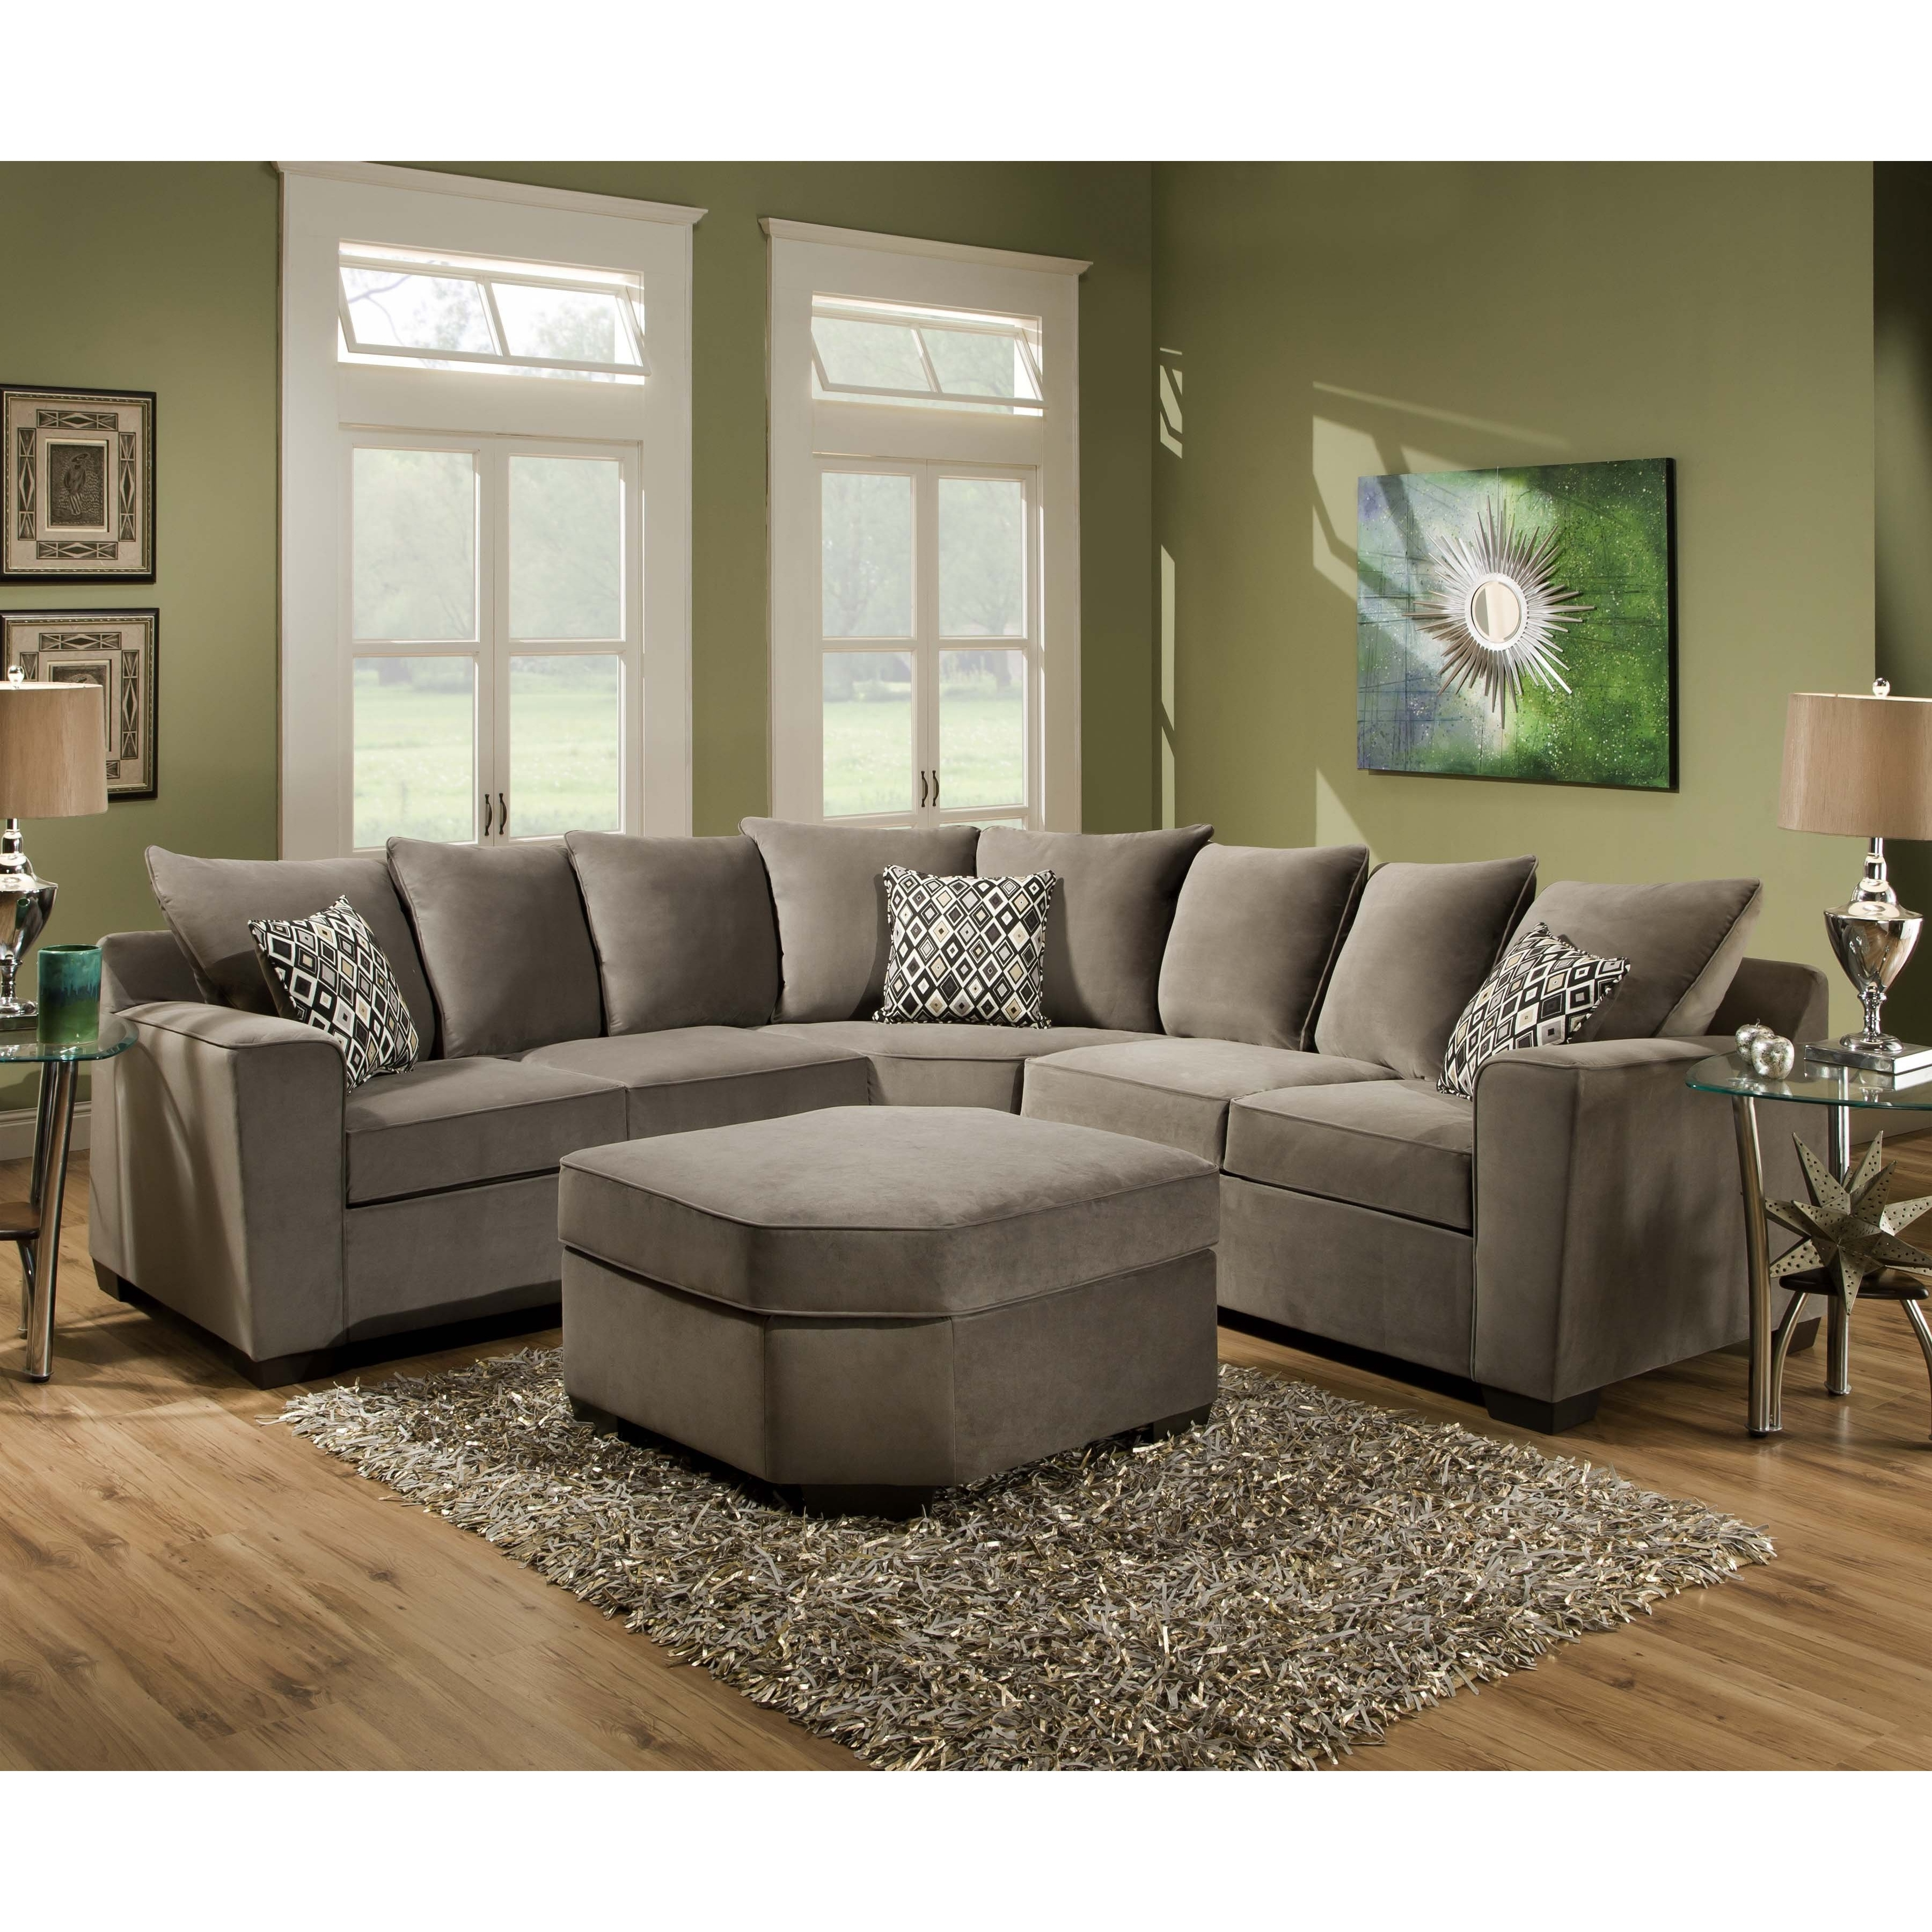 96X96 Sectional Sofas Regarding Most Recently Released Elliot Fabric Microfiber 2 Piece Sectional Sofa Elliot Fabric (View 5 of 15)